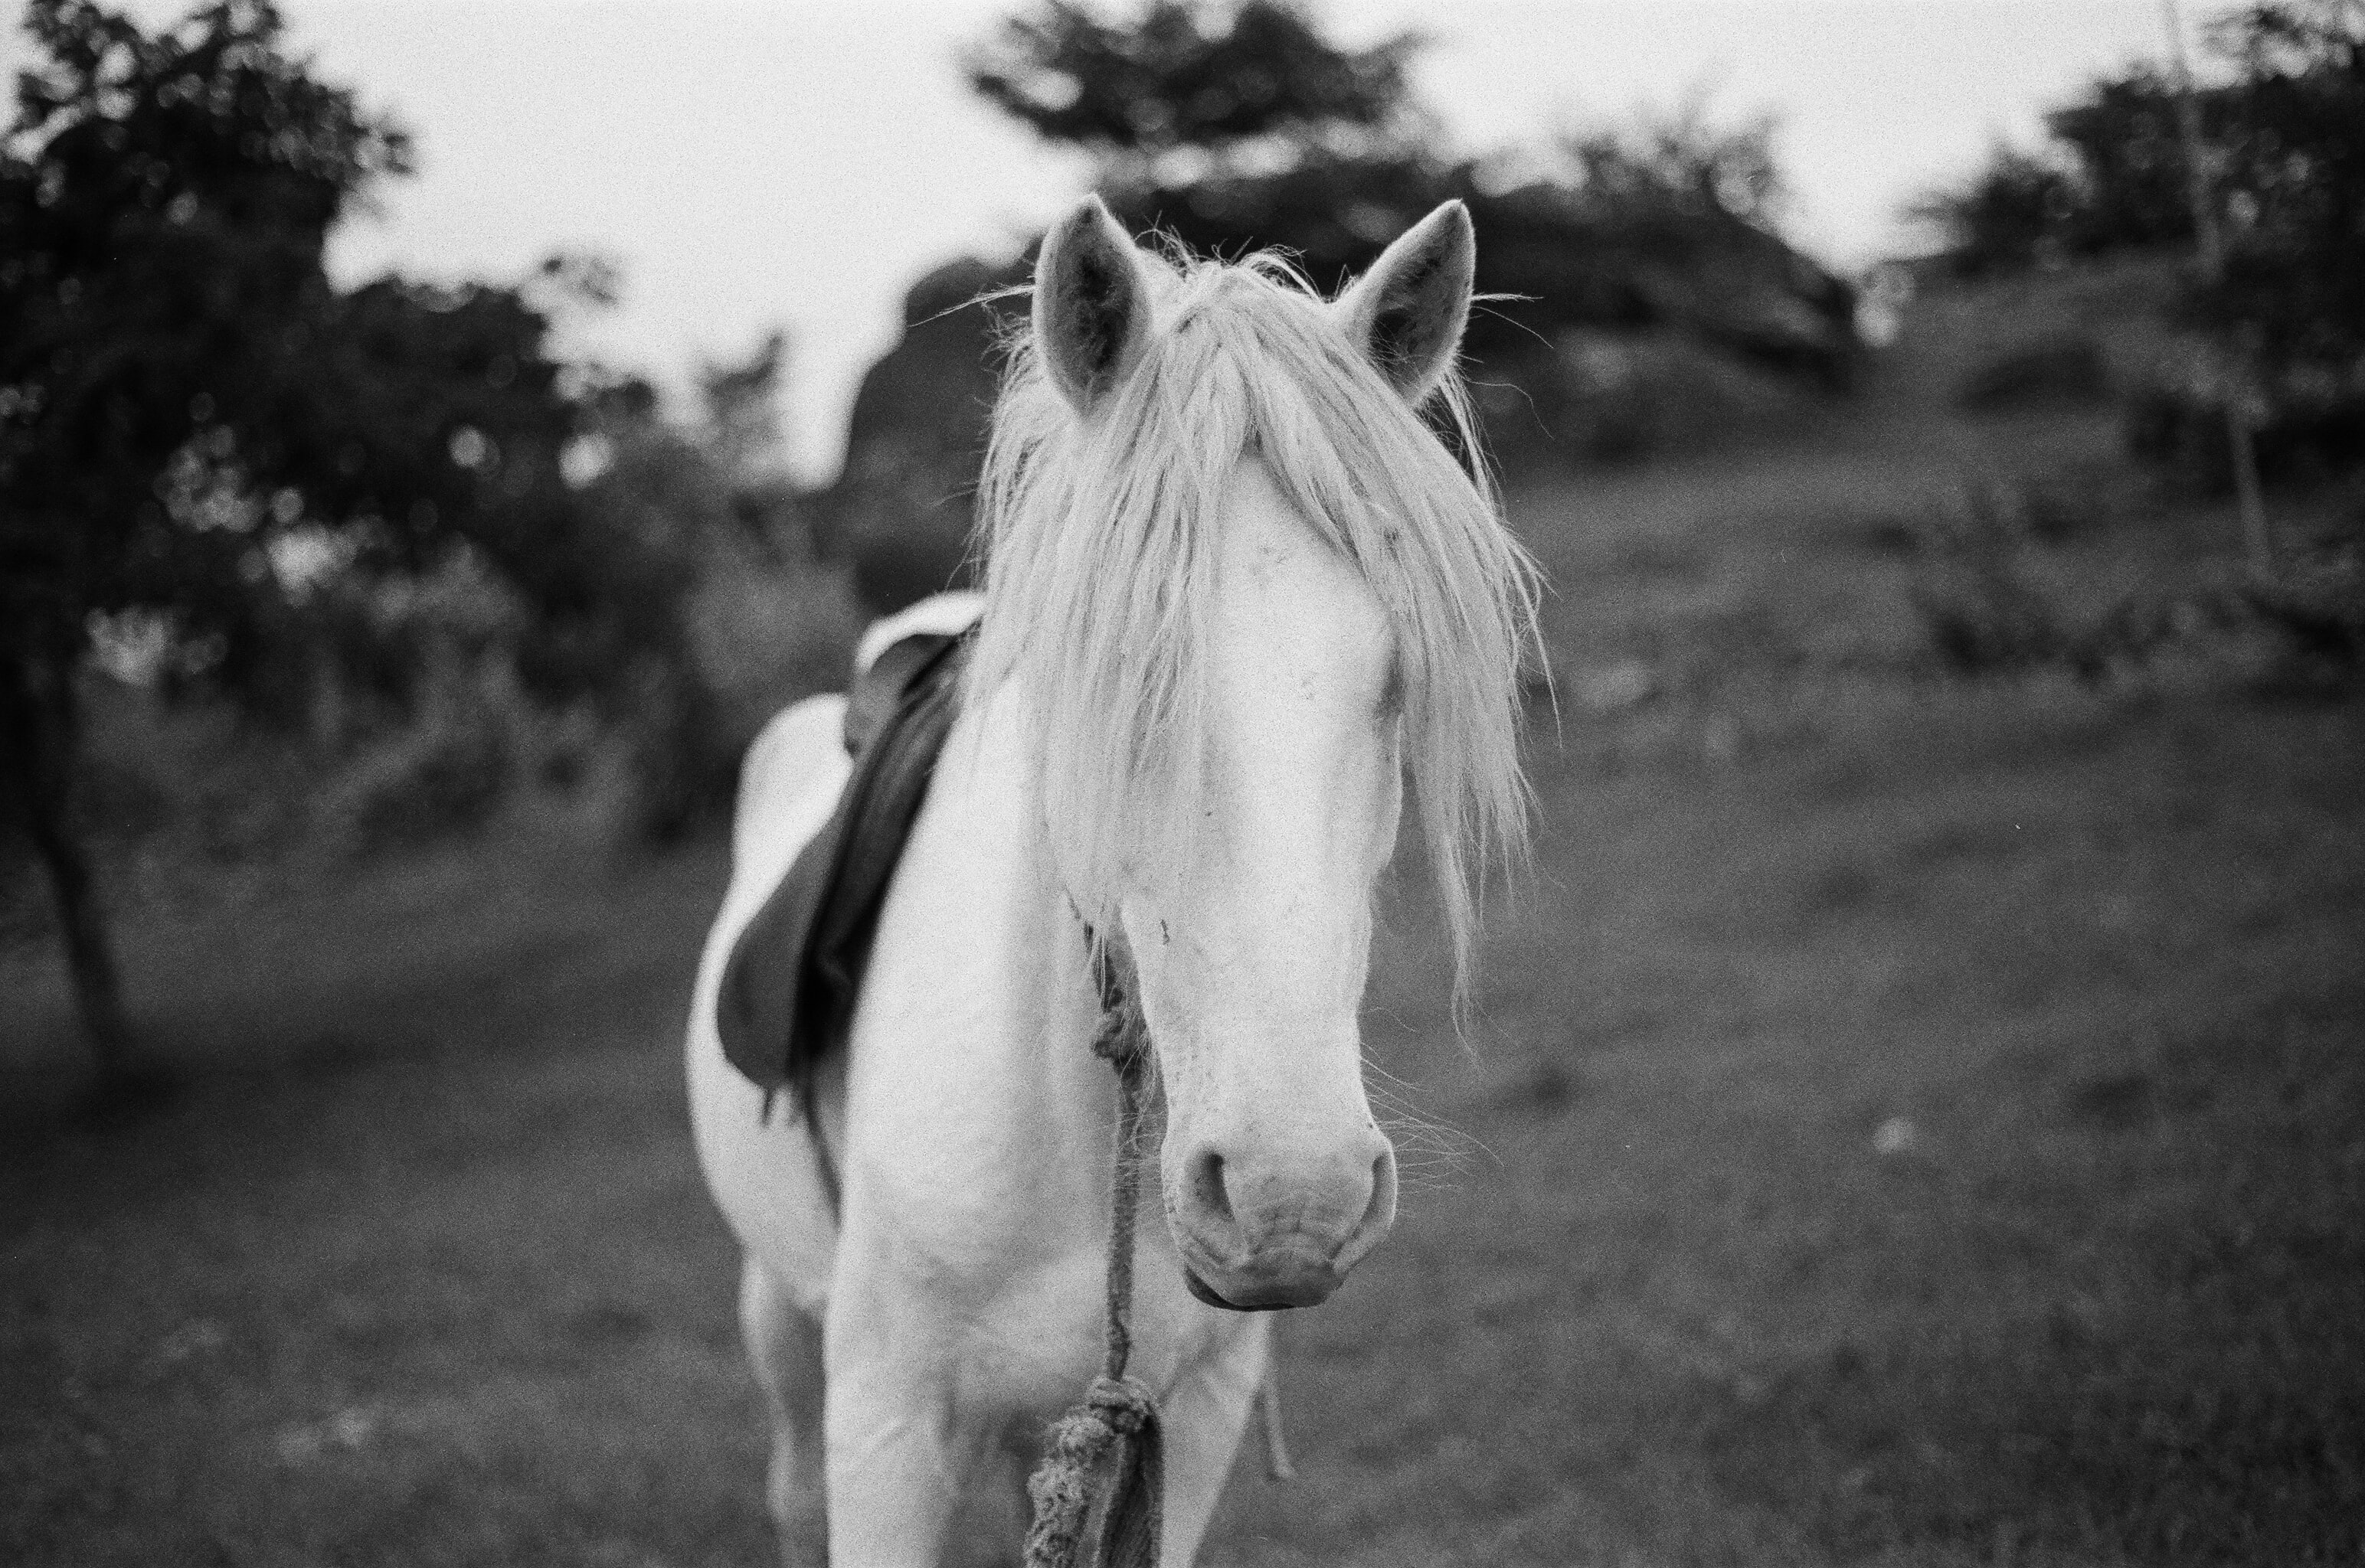 greyscale photography of horse